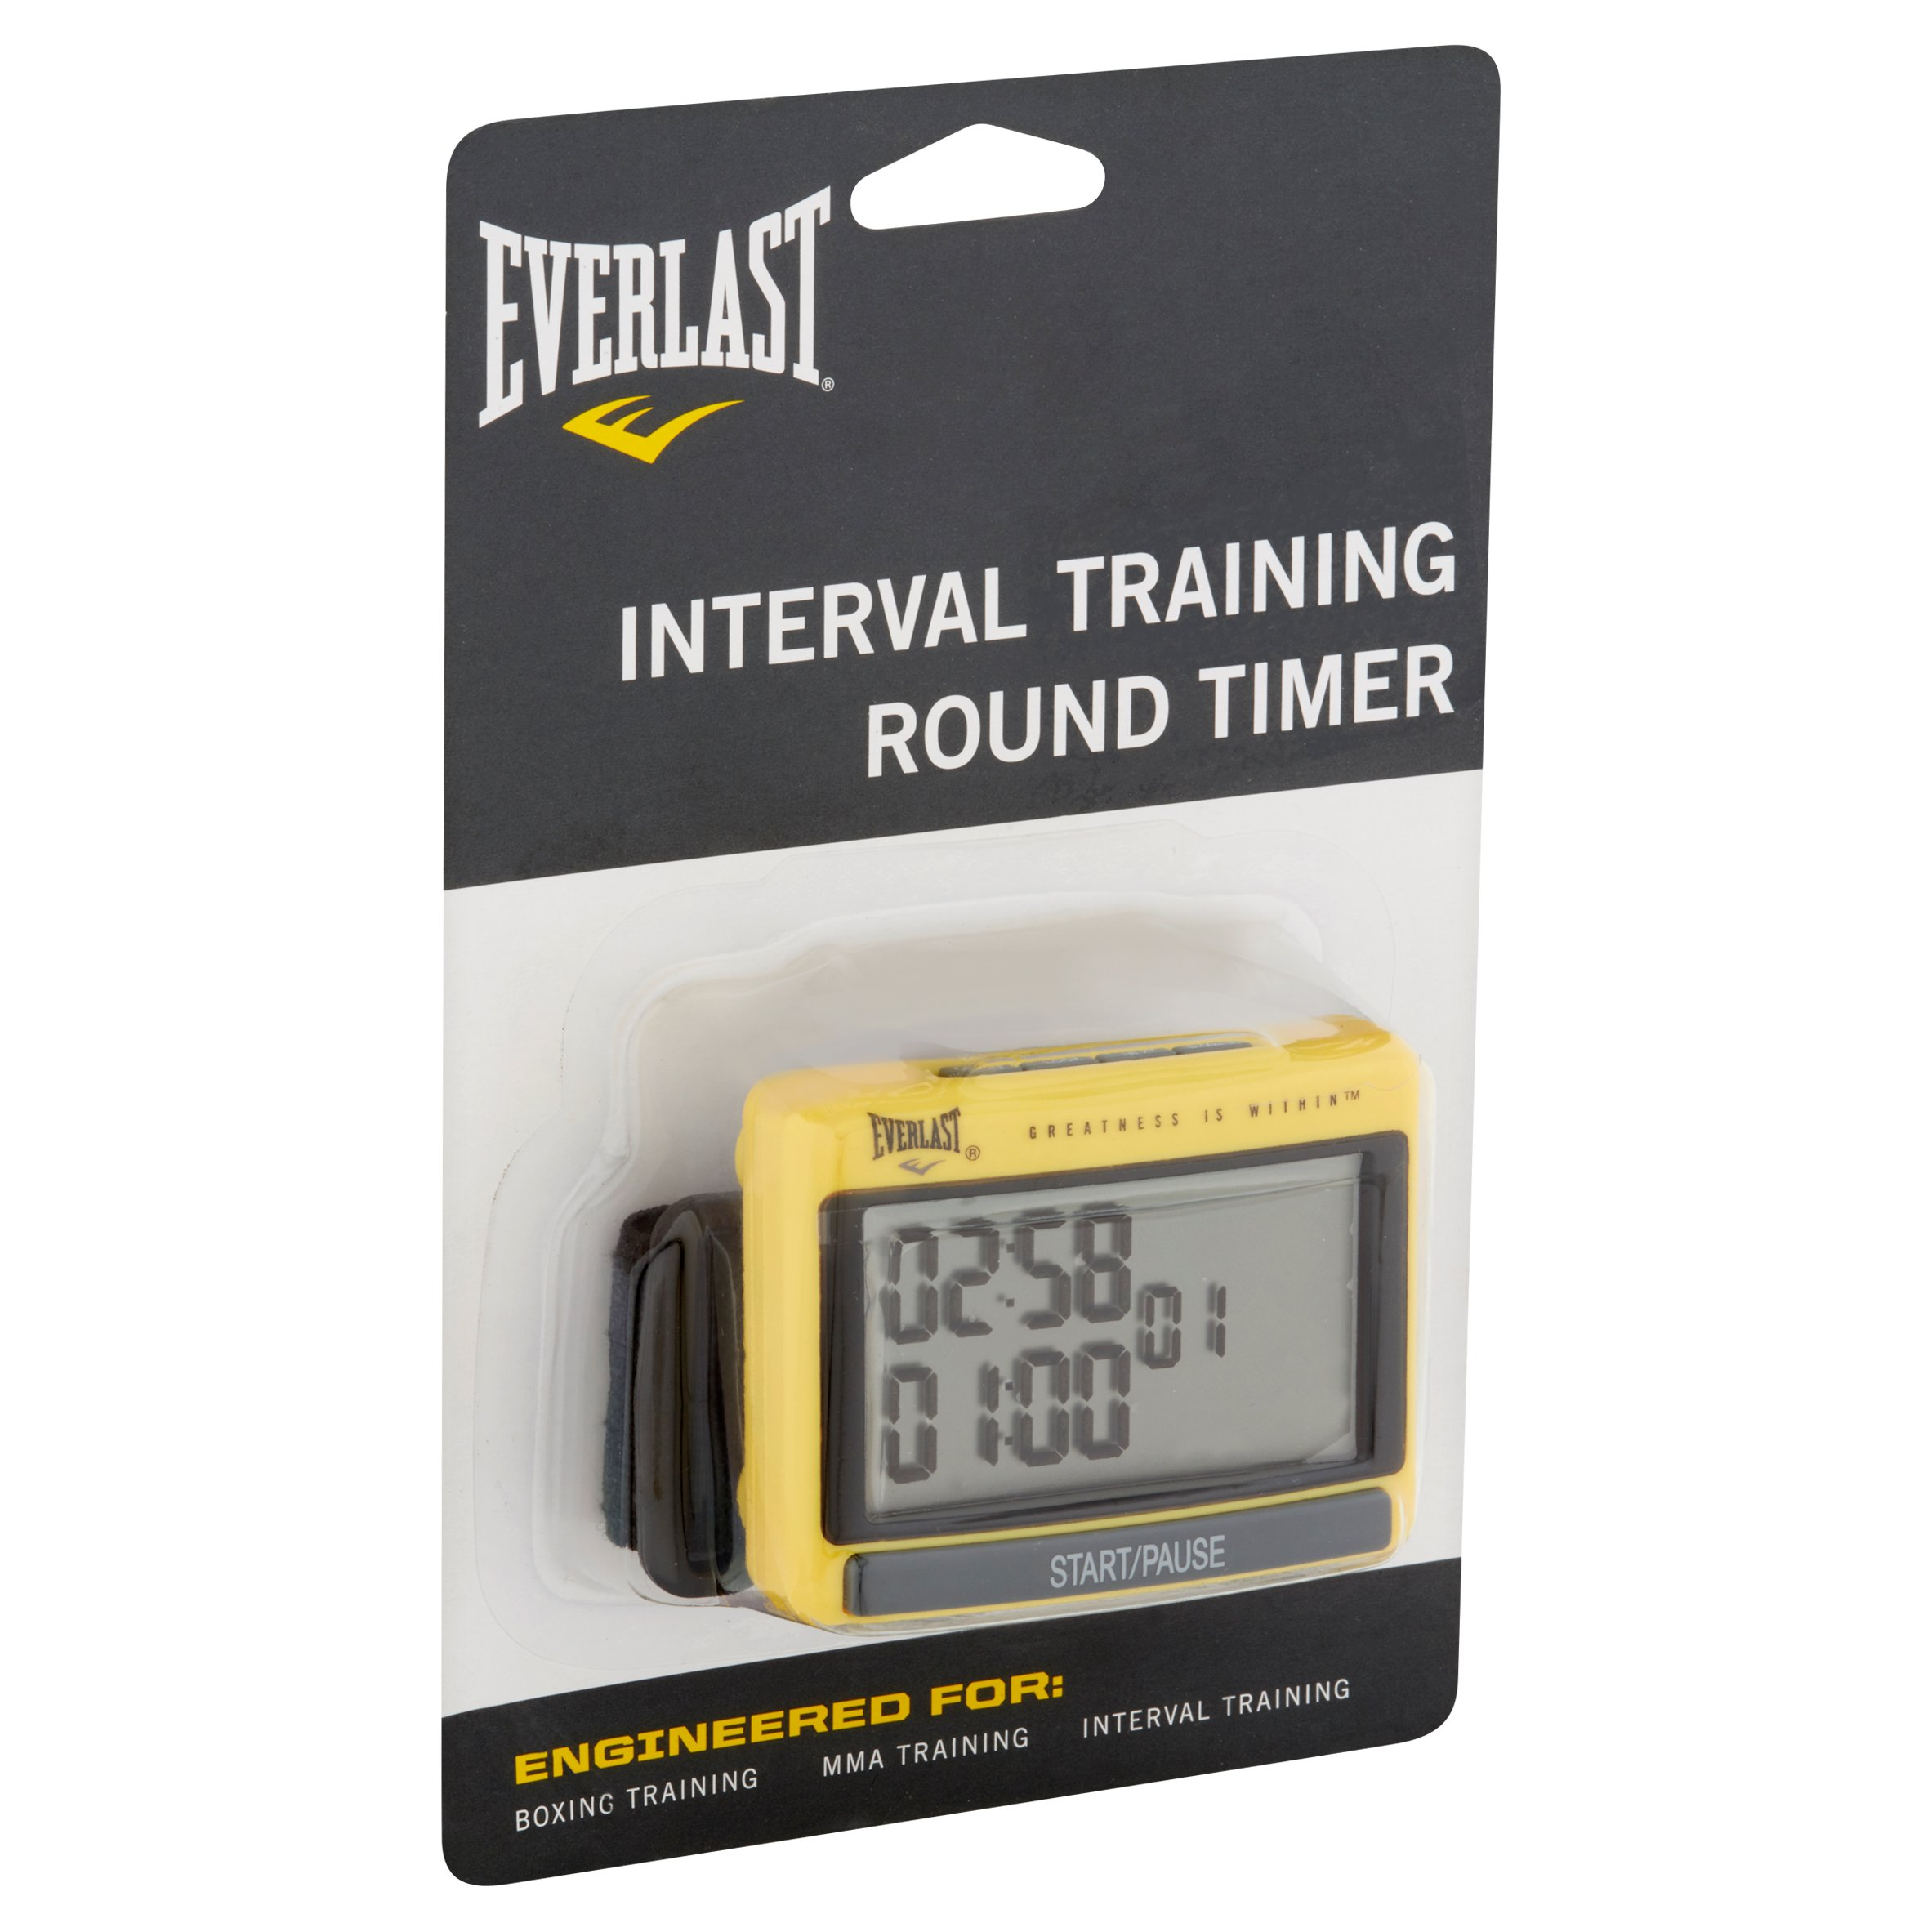 Everlast Interval Training Round Timer How To Build 28 Led Clock